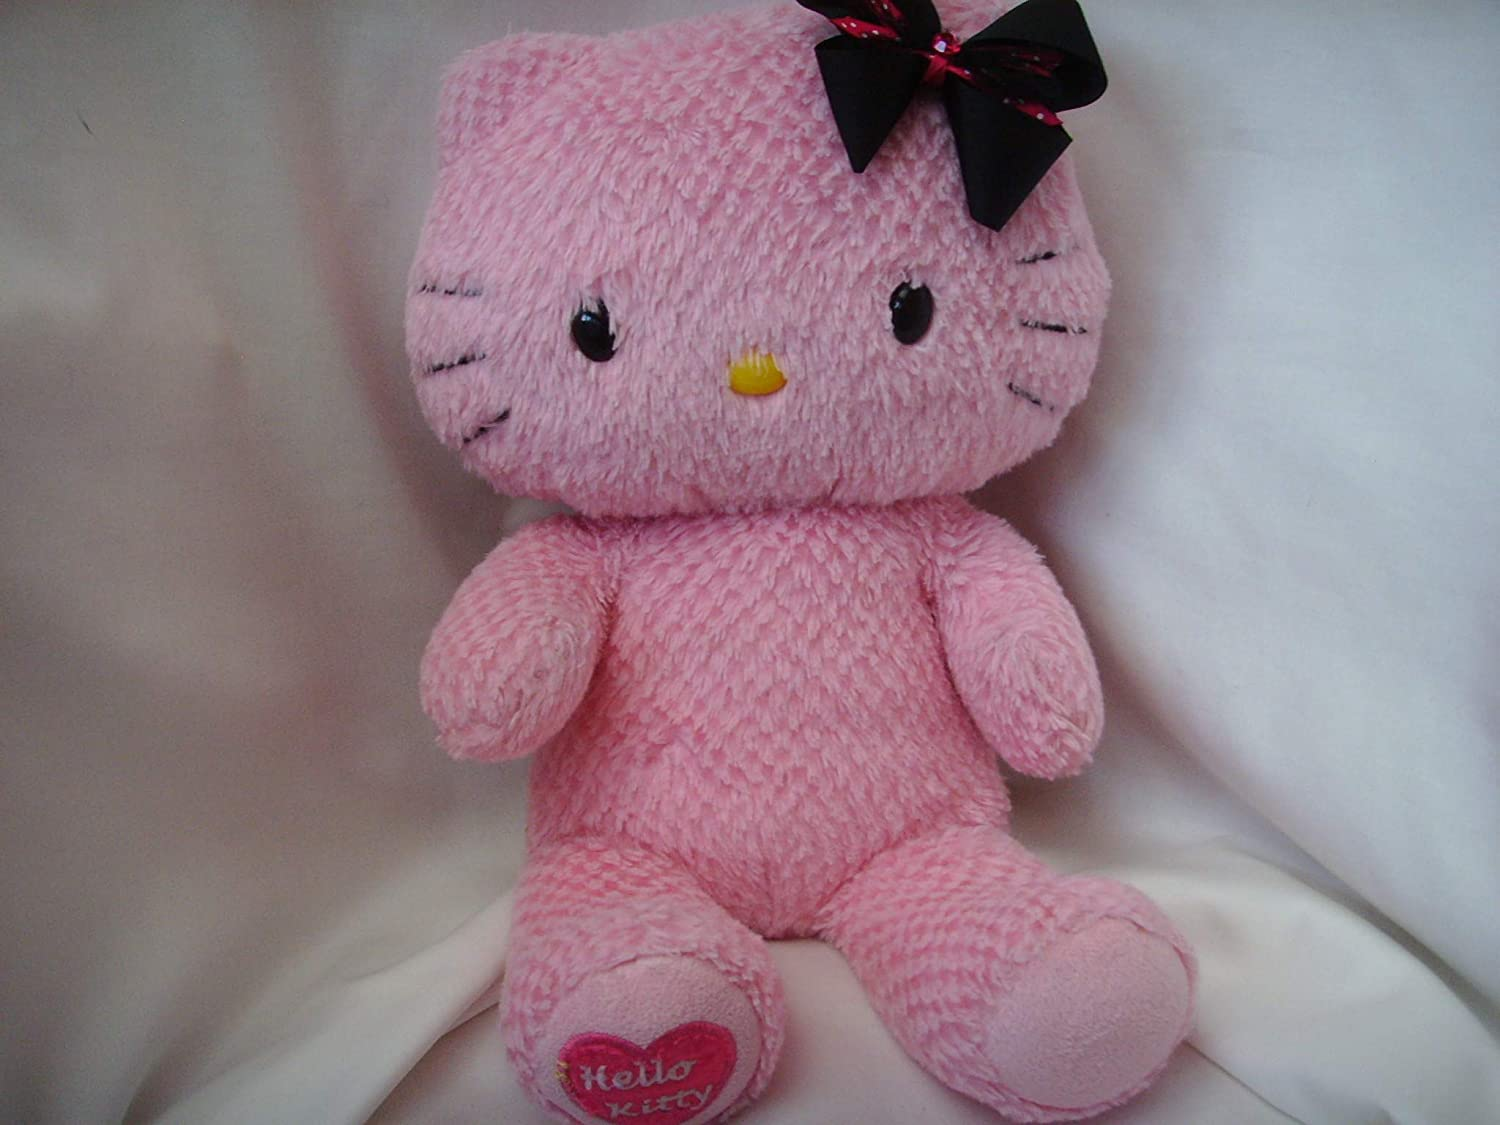 12in New British Hello Kitty with Bow Plush